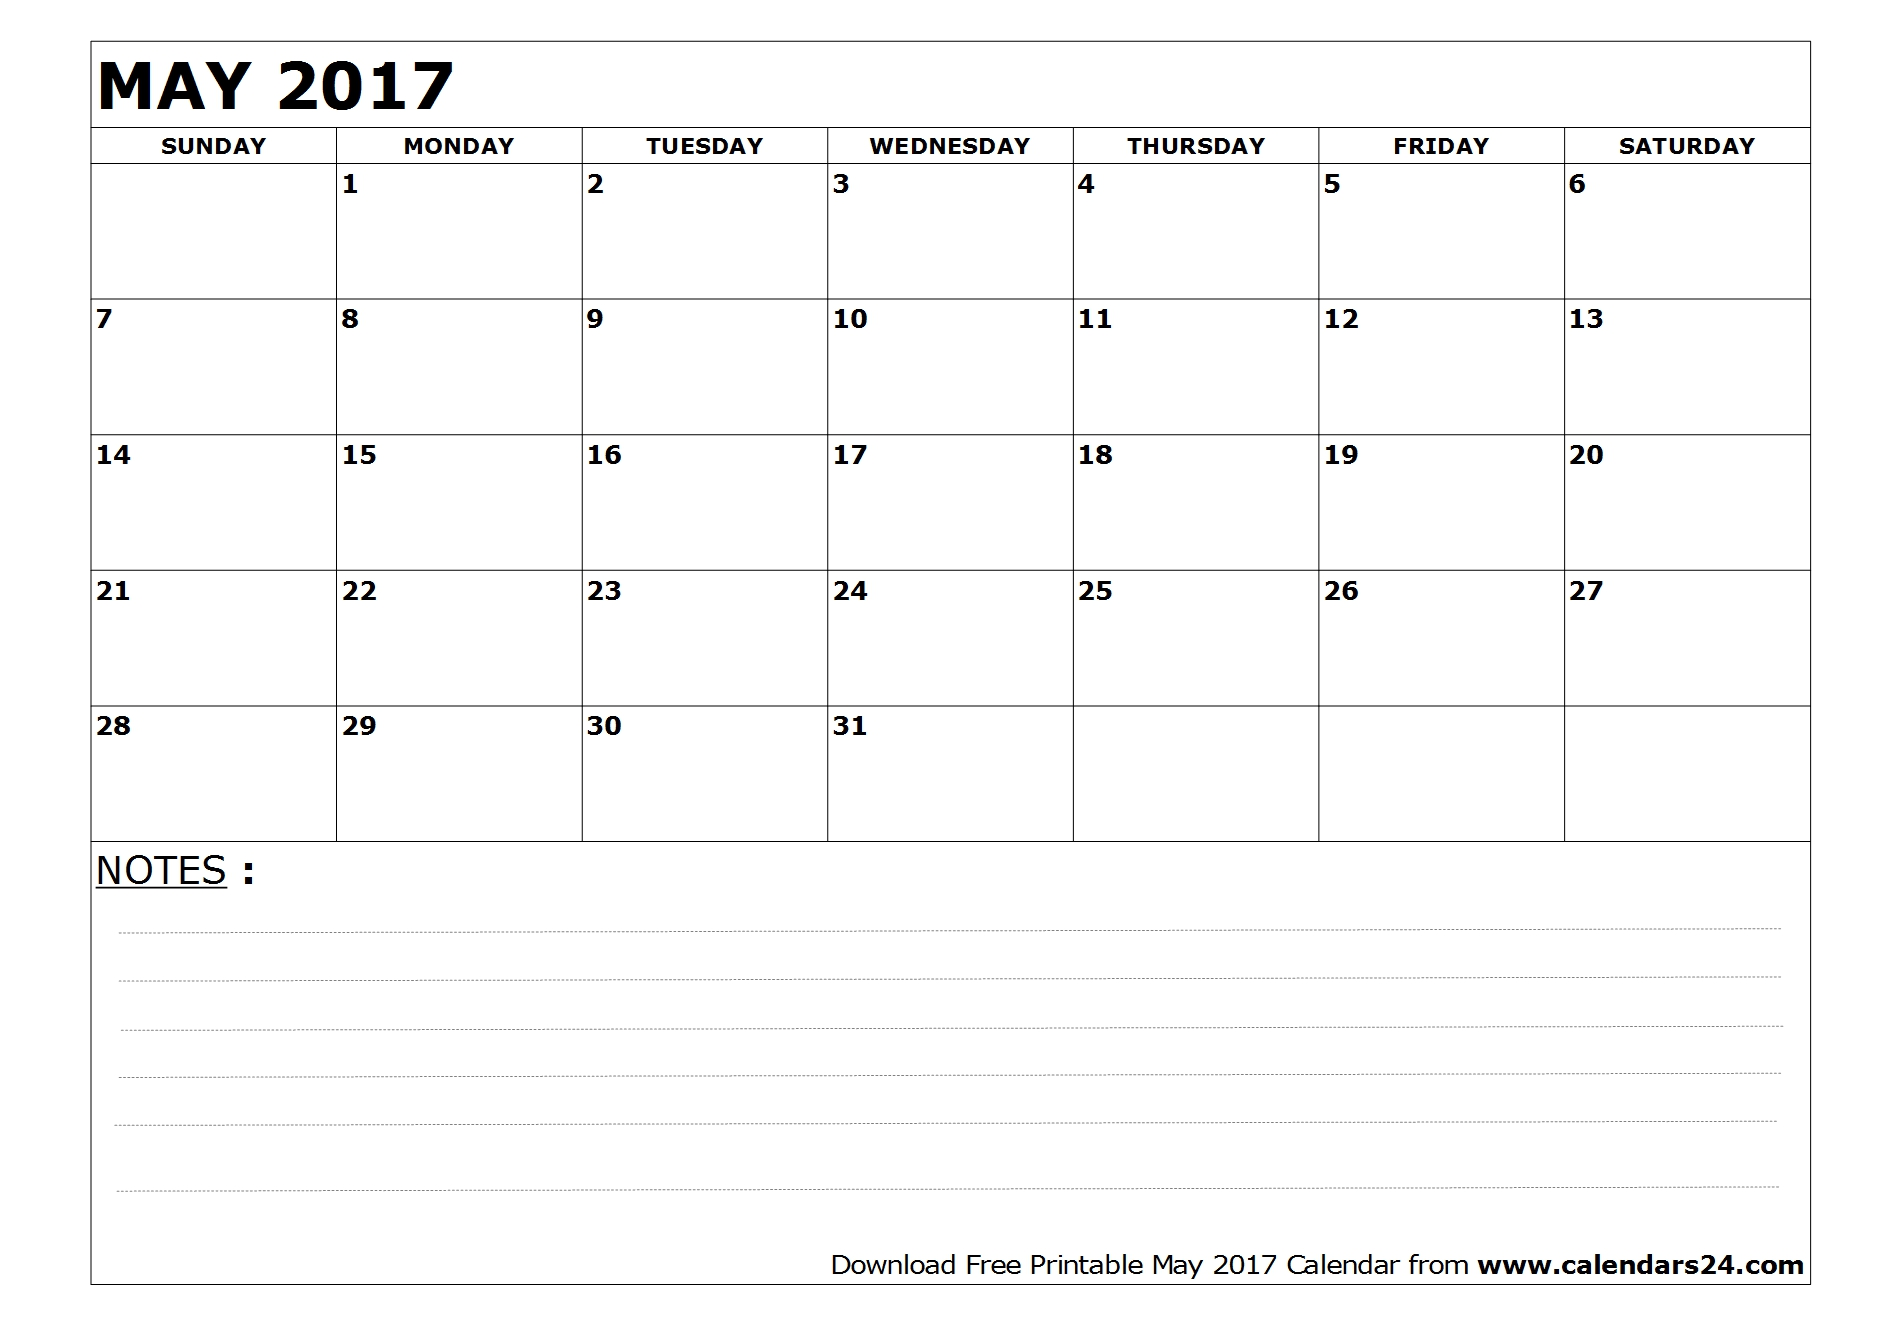 Blank May 2017 Calendar with notes